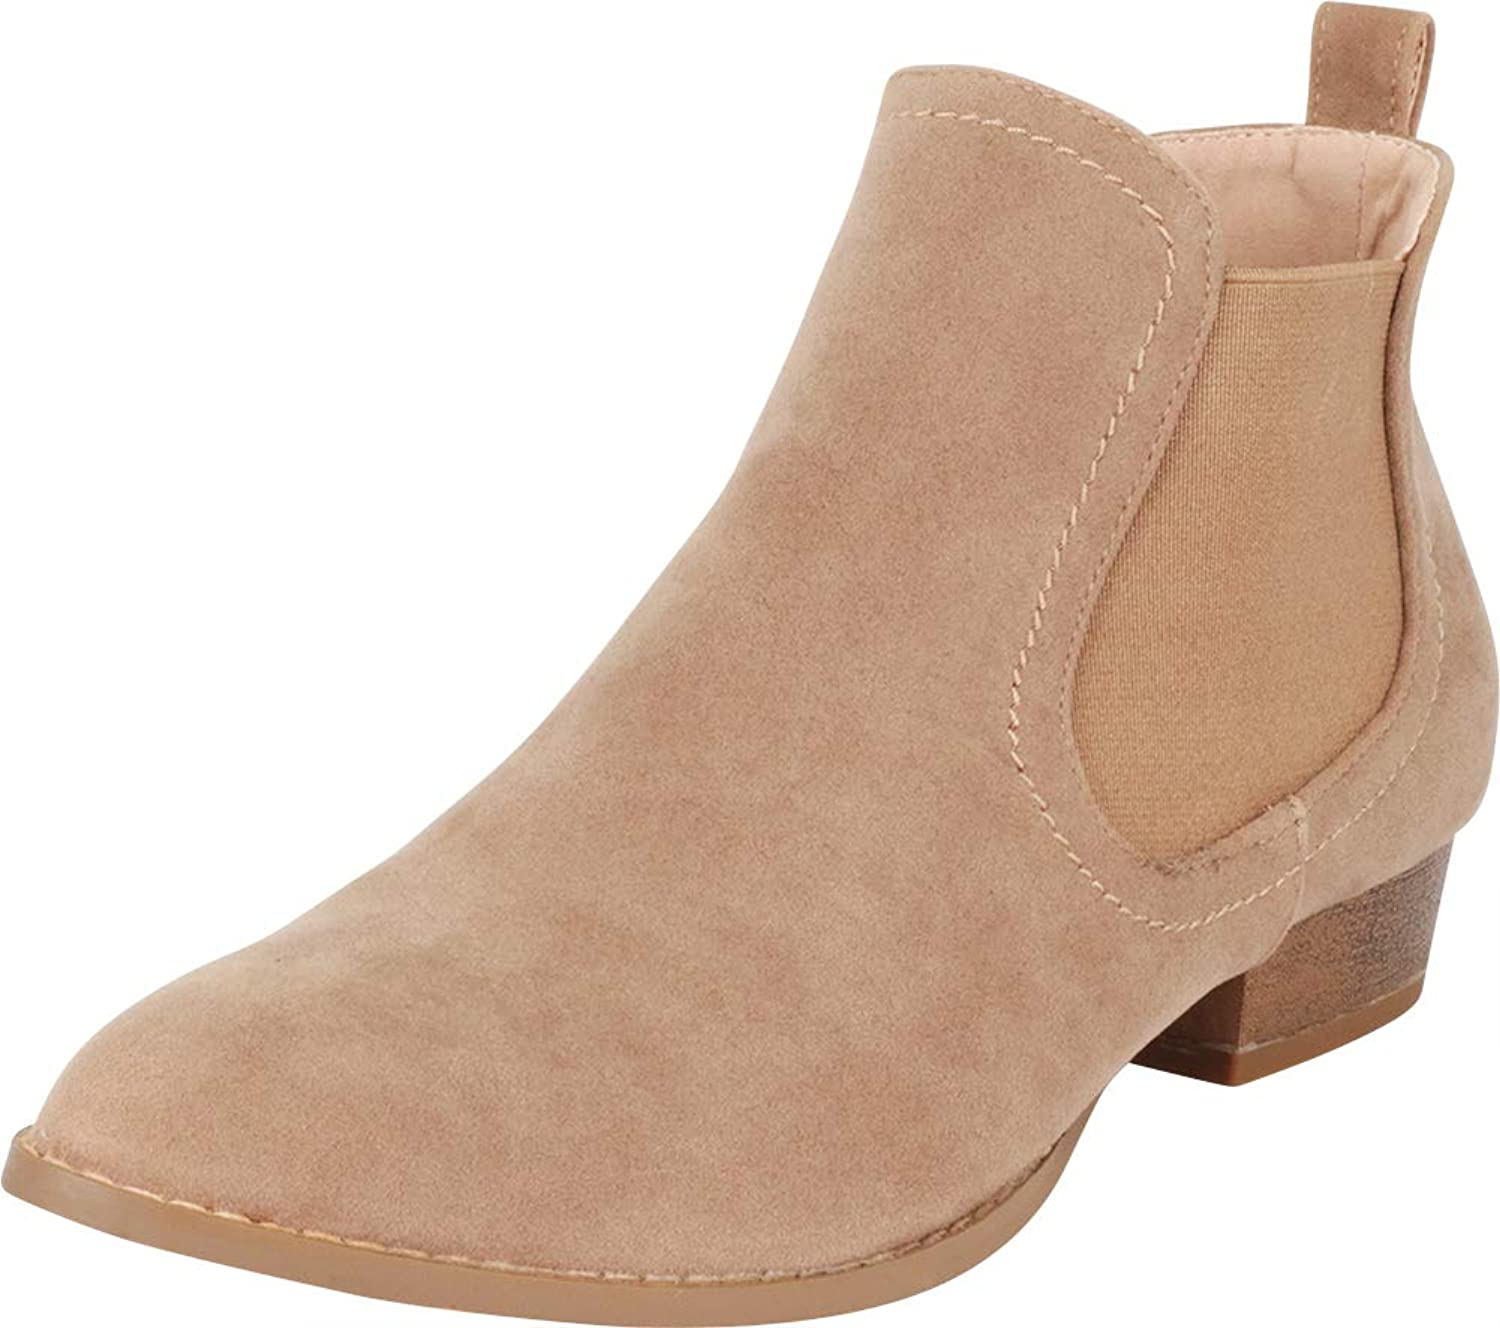 Cambridge Select Women's Classic Western Pointed Toe Chelsea Stretch Low Heel Ankle Bootie